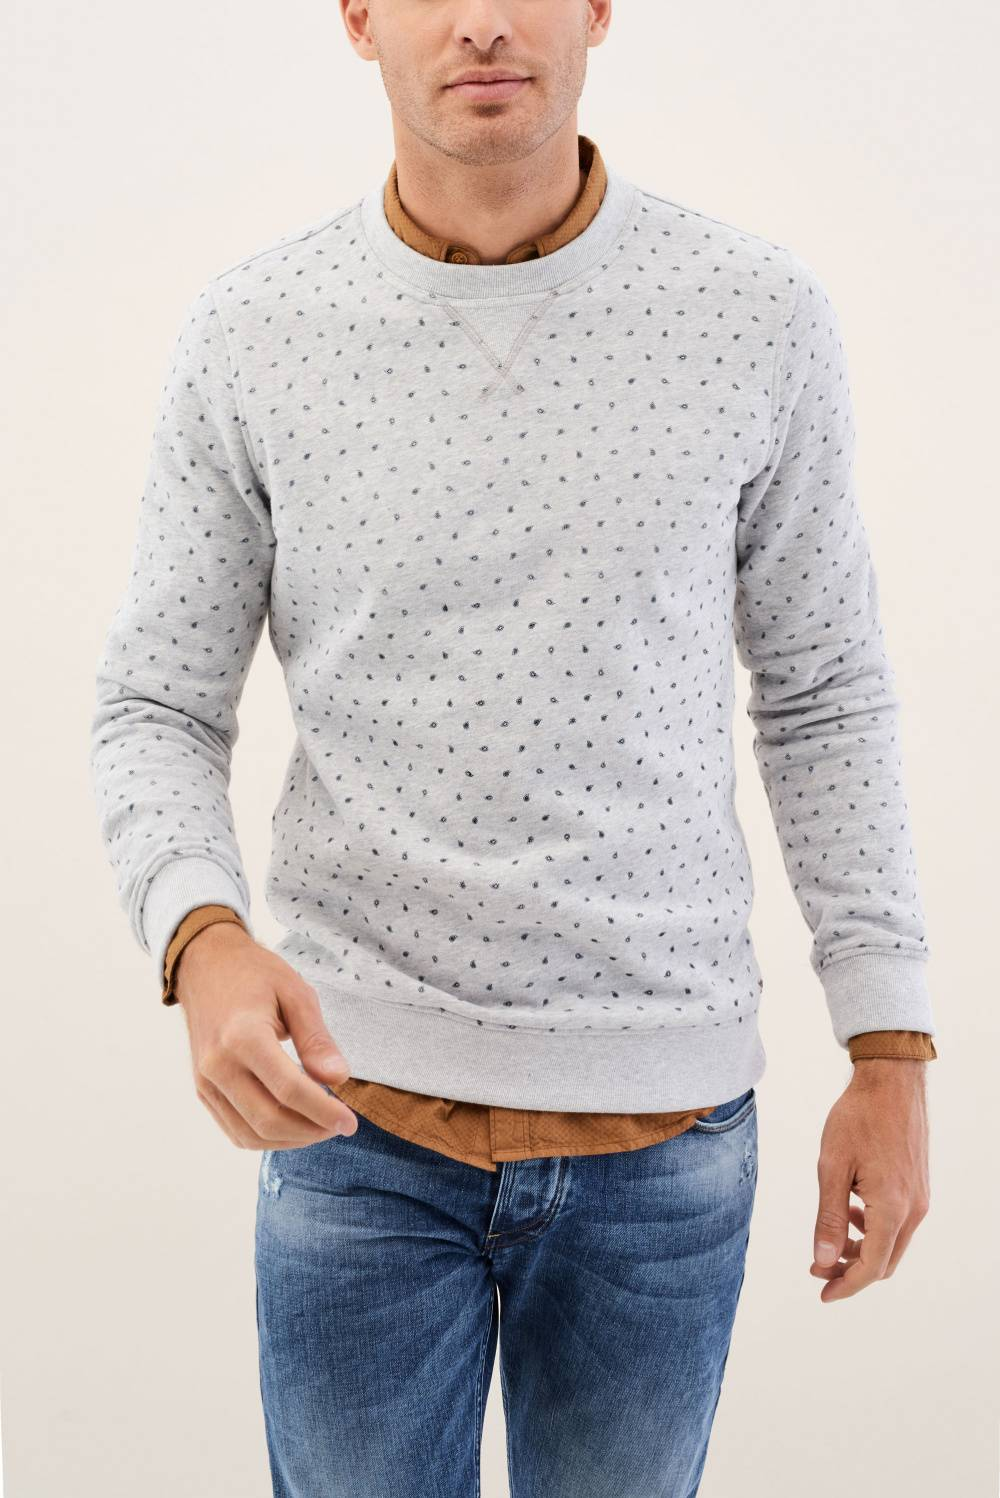 Sweater with microprint - Salsa